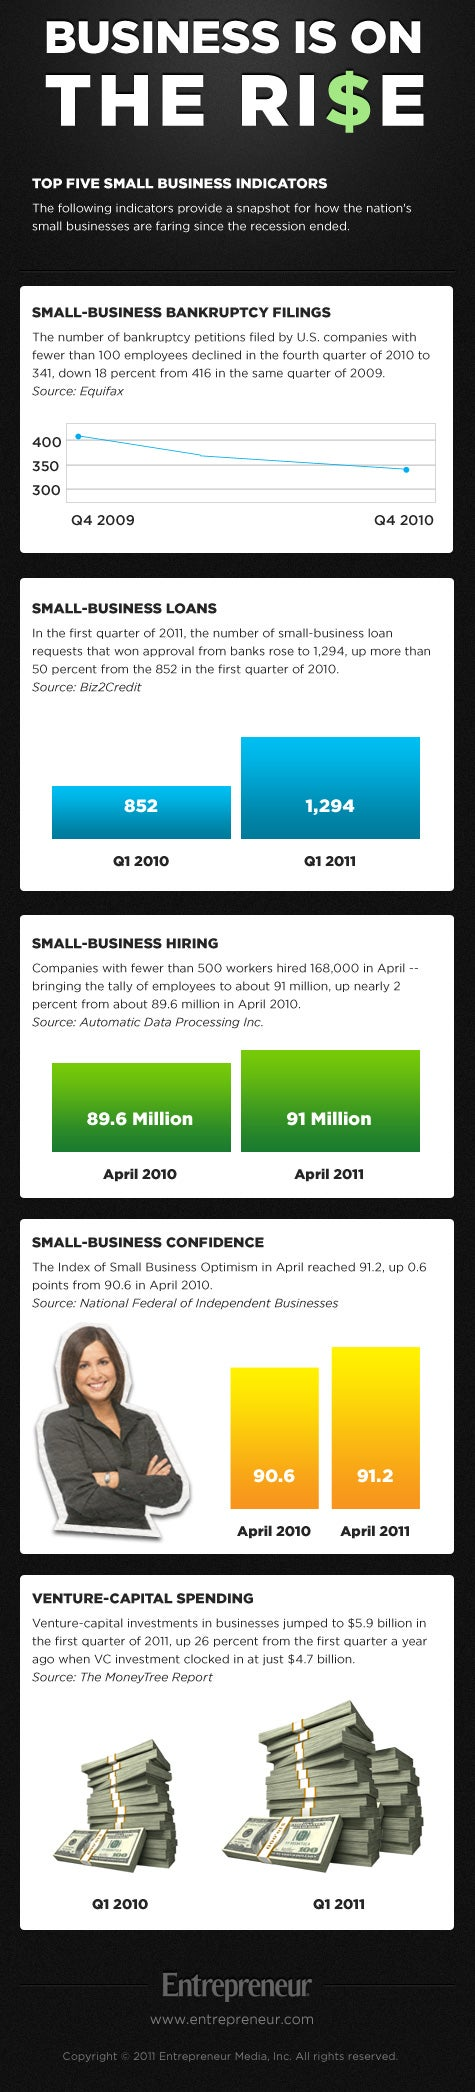 Indicators Point to a Small-Business Rebound (Infographic)